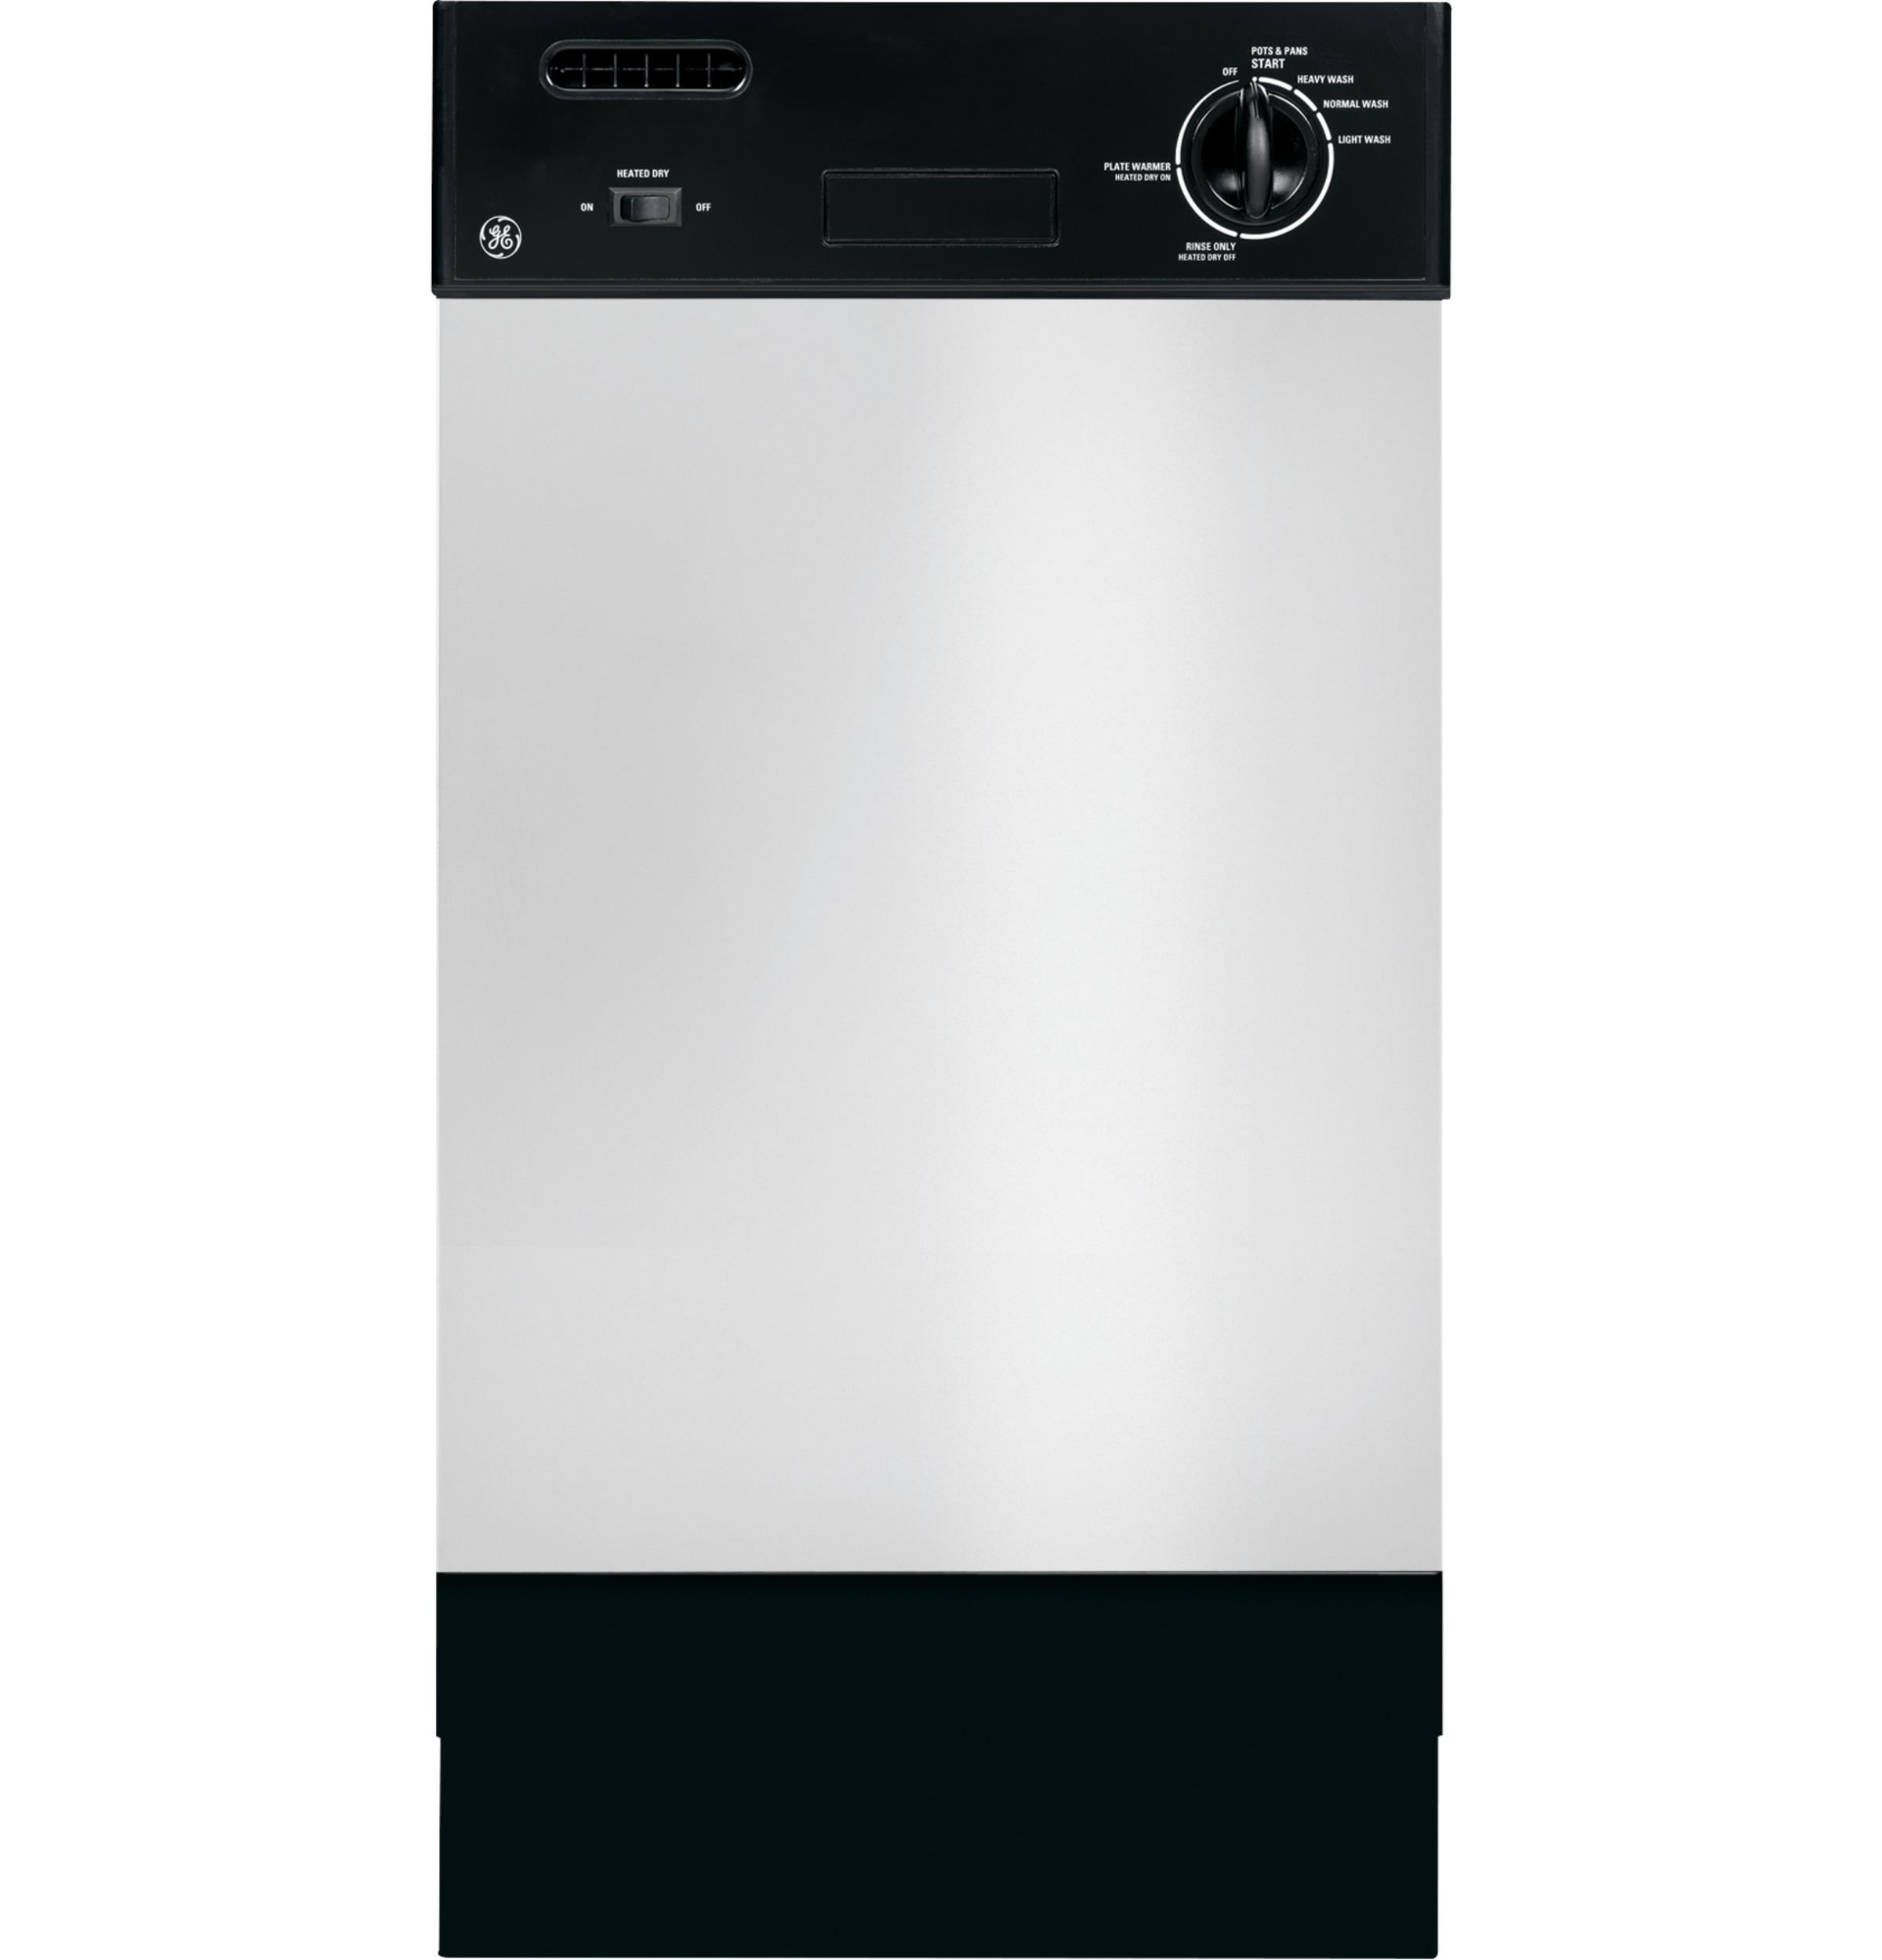 Small Dish Washer Ge Spacemakerar 18 Built In Dishwasher Gsm1860fss Ge Appliances